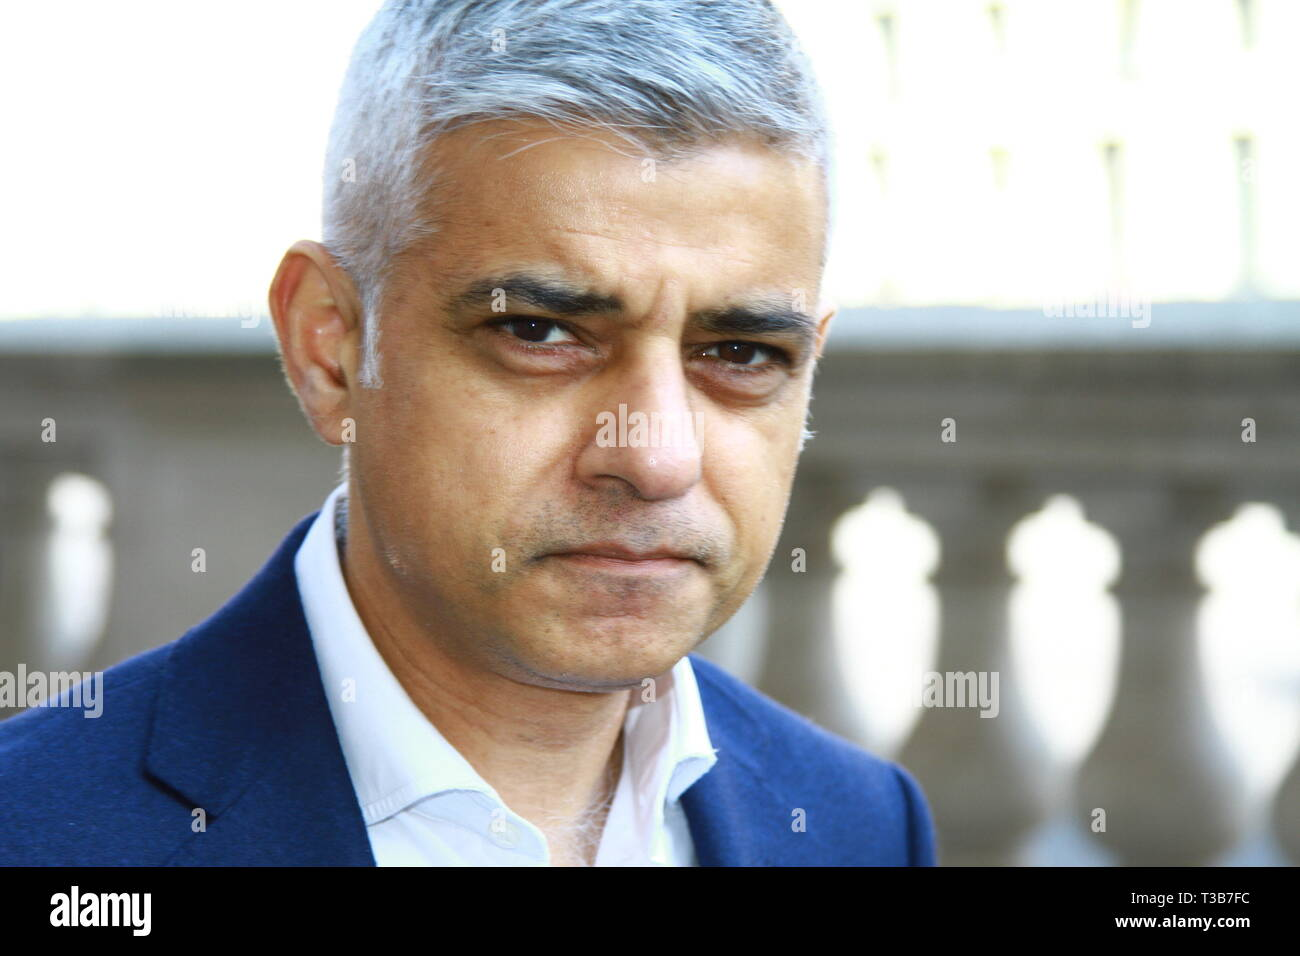 SADIQ KHAN MAYOR OF LONDON IN WHITEHALL, WESTMINSTER AFTER A MEETING WITH THERESA MAY, POLICE CHIEFS, ADVISORS AND FAMILIES AFFECTED BY KNIFE CRIME AT A SUMMIT REGUARDING KNIFE CRIME VIOLENCE IN THE UNITED KINGDOM. - Stock Image